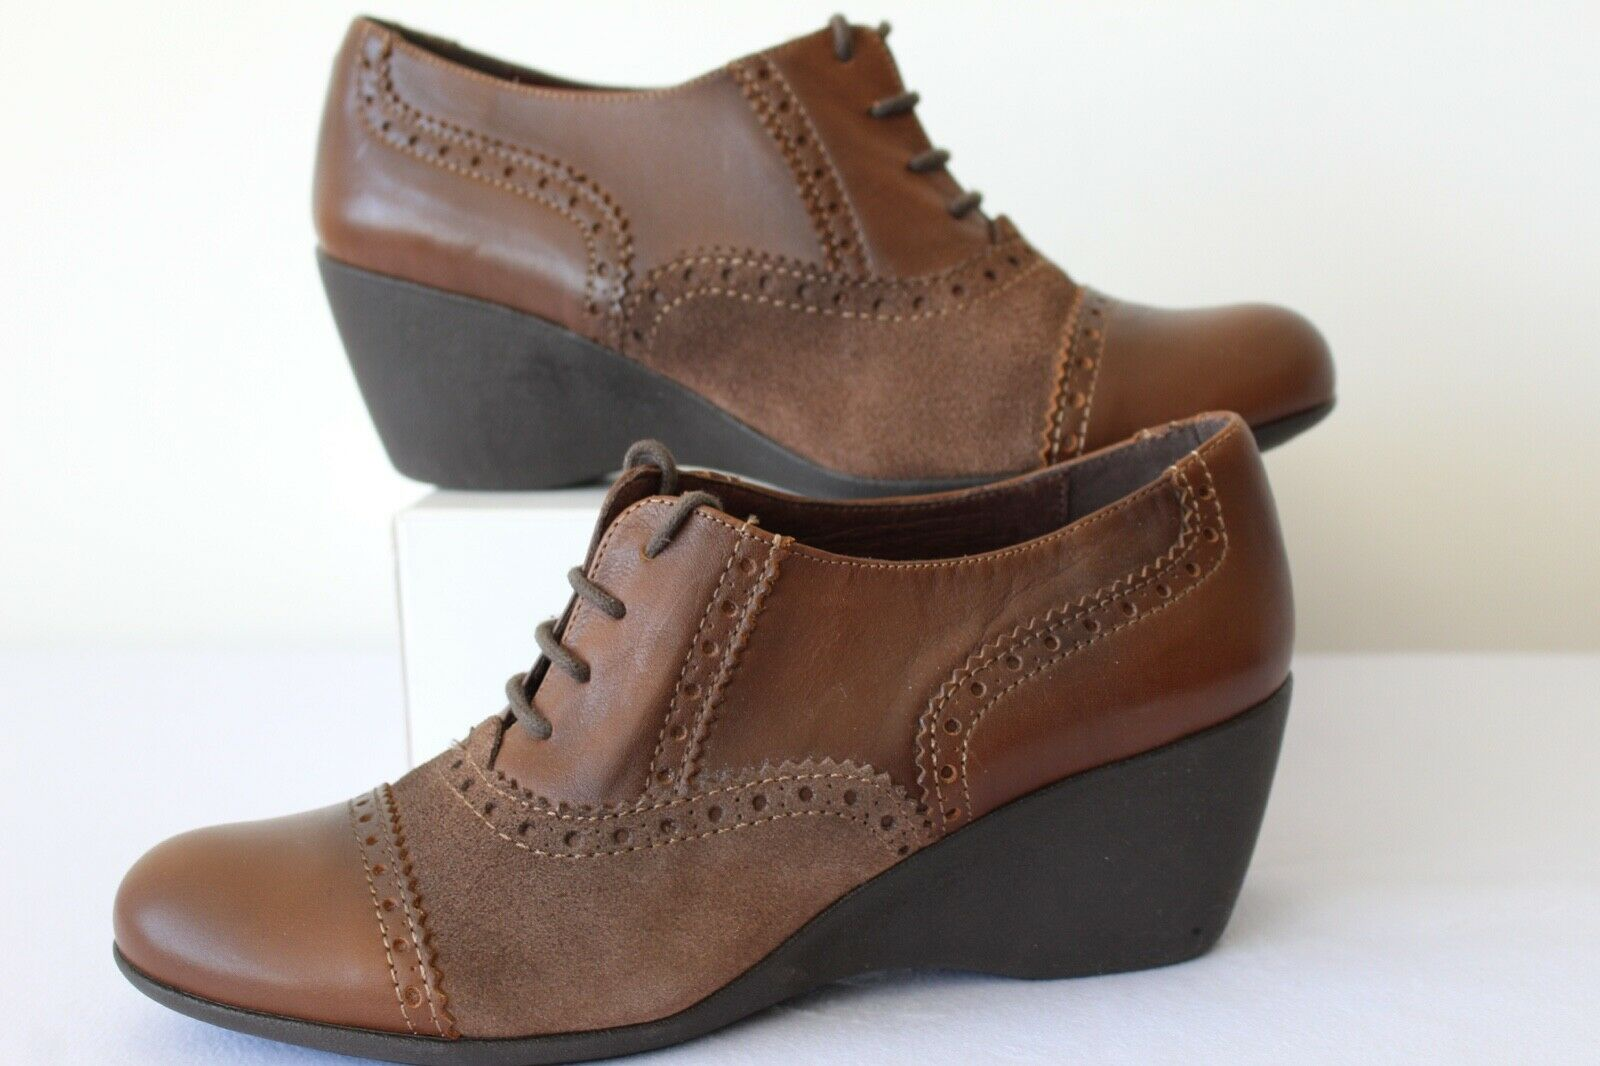 BATA LADIES FAB BROWN LEATHER CASUAL LACE UP SHOES WEDGE HEEL SIZE 39  EXCELLENT